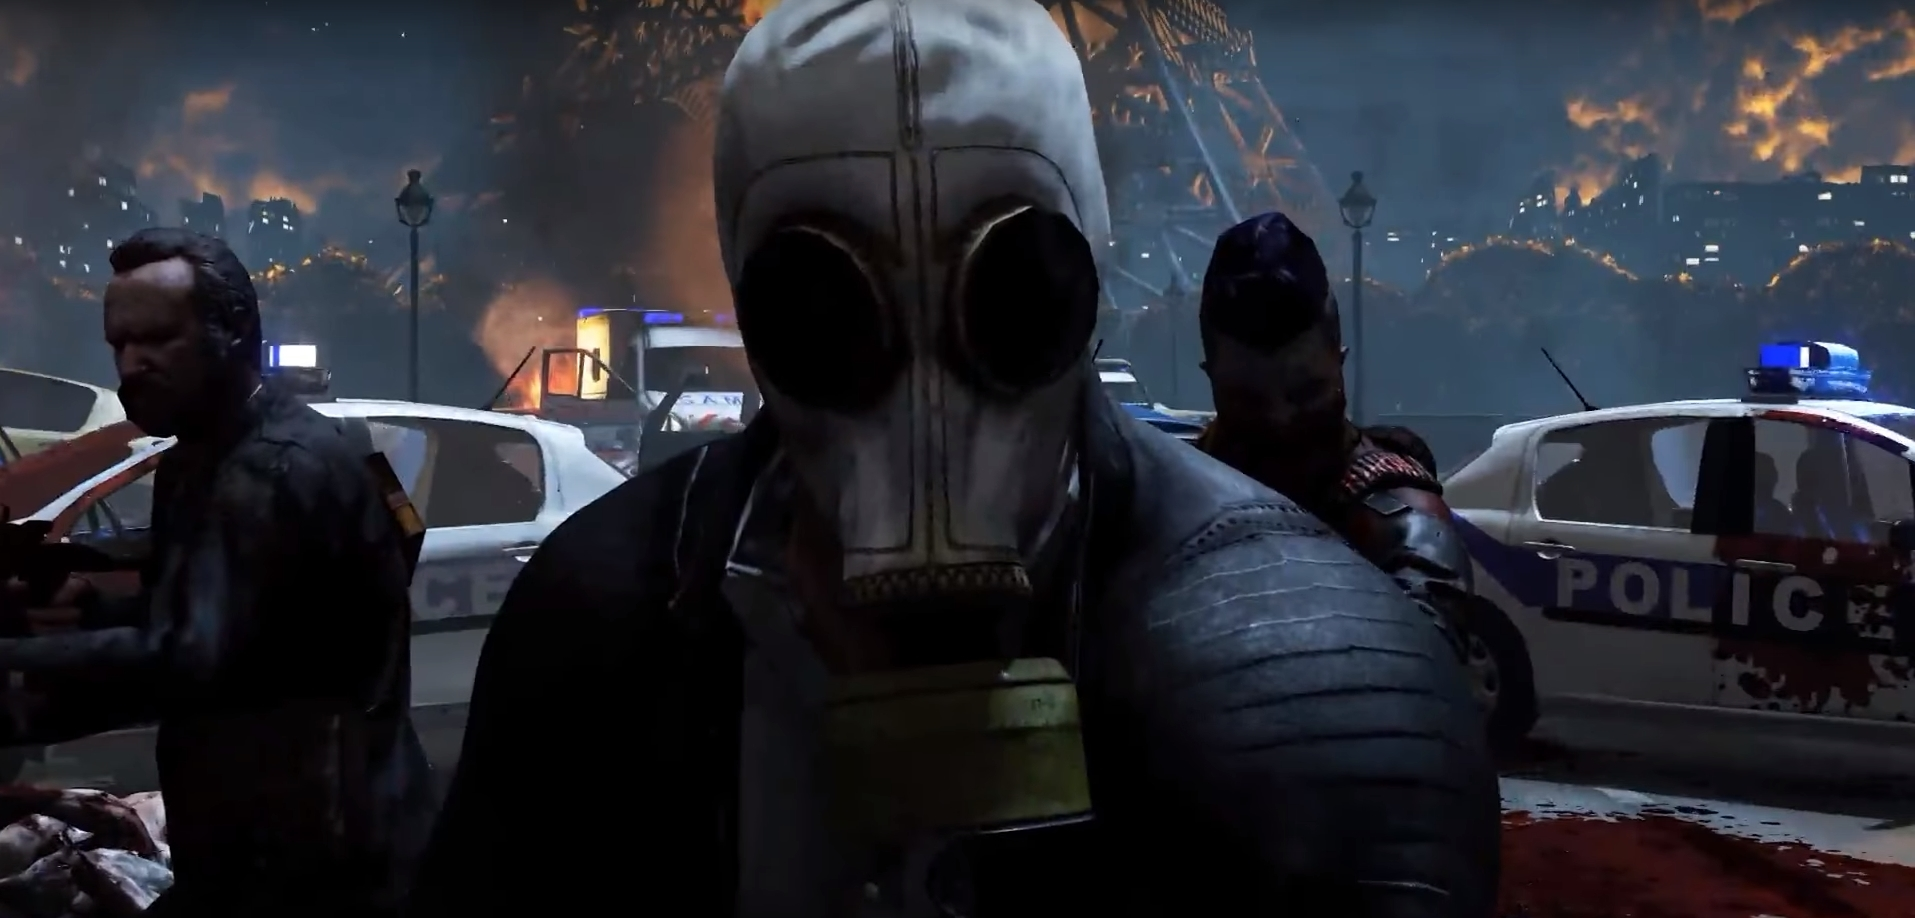 Killing Floor 2 Developers Tripwire Interactive Gives an Extensive List of Upcoming Content in an End of Year Announcement